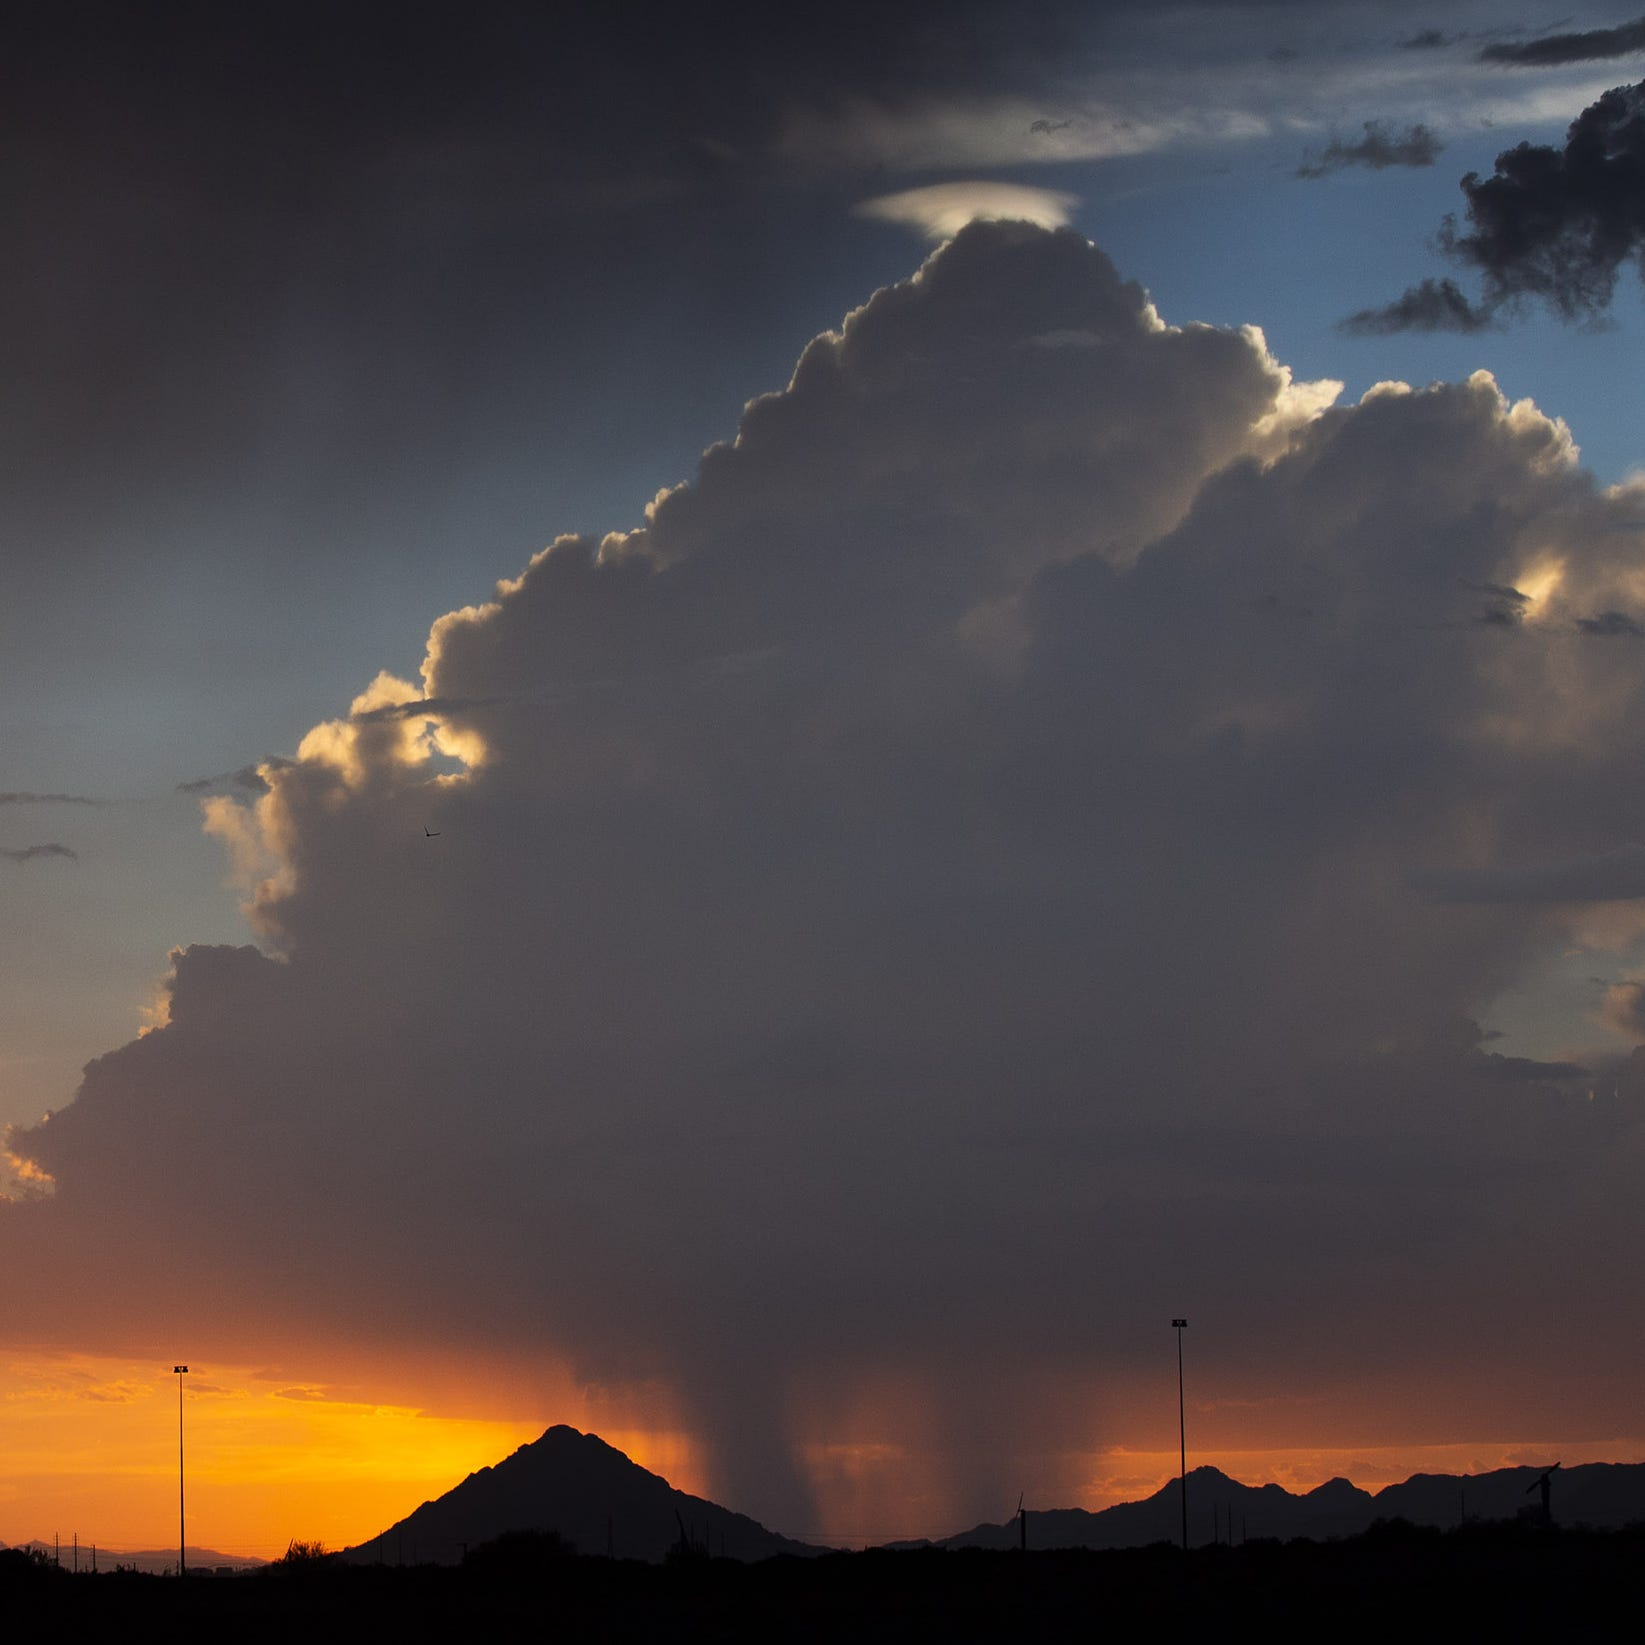 Rain expected in the Phoenix area, Tucson Wednesday